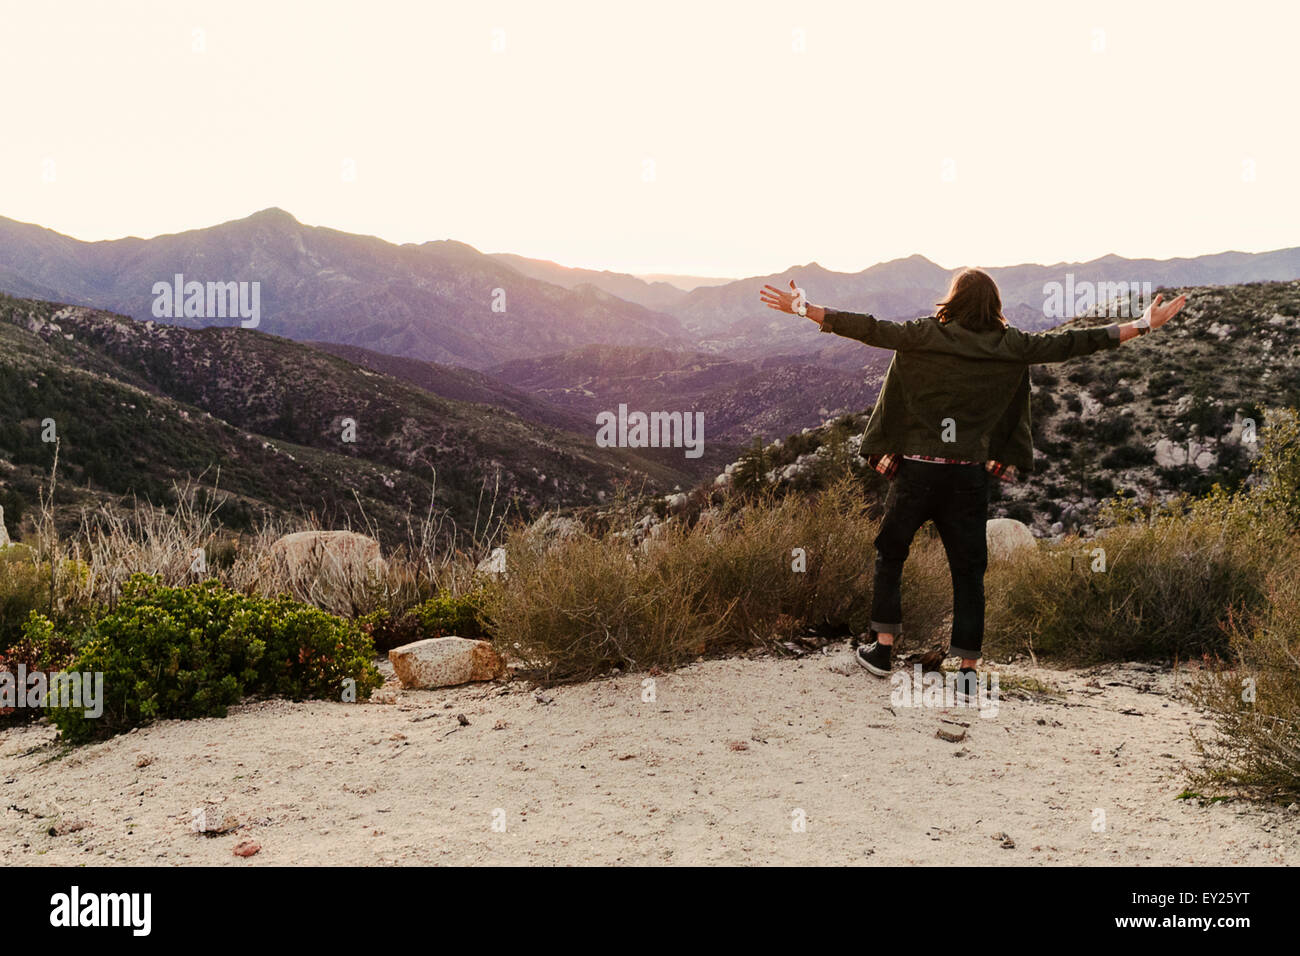 Rear view of young man looking out on landscape, Los Angeles, California, USA - Stock Image